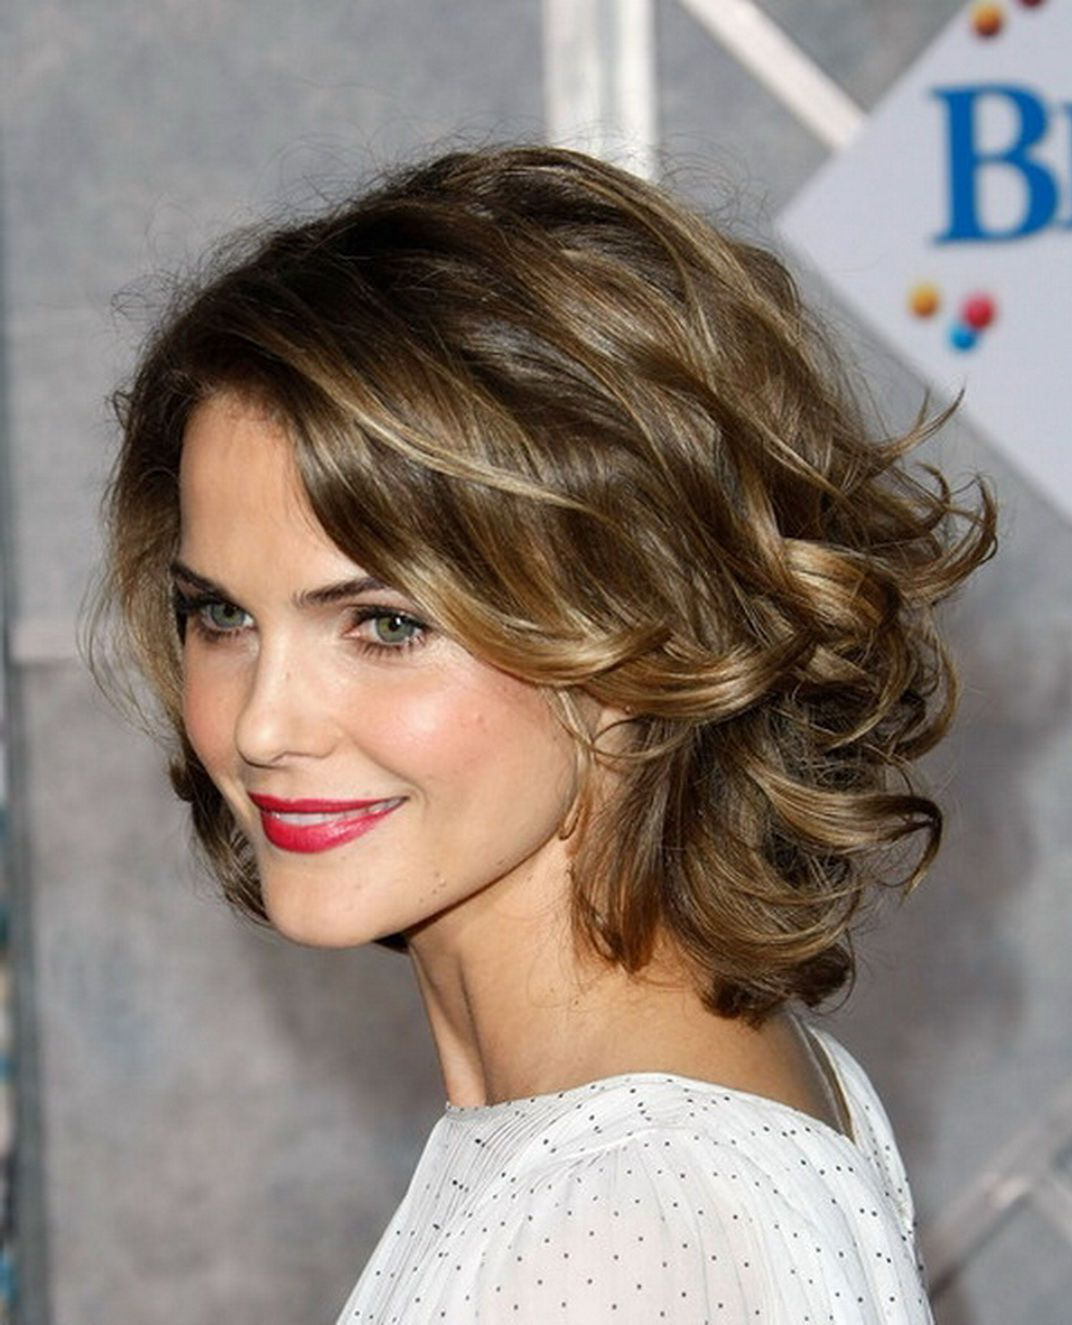 10 Eye Catching And Amazingly Beautiful Short Hairstyles – Get The Pertaining To Short Hairstyles For Fine Curly Hair (View 13 of 25)